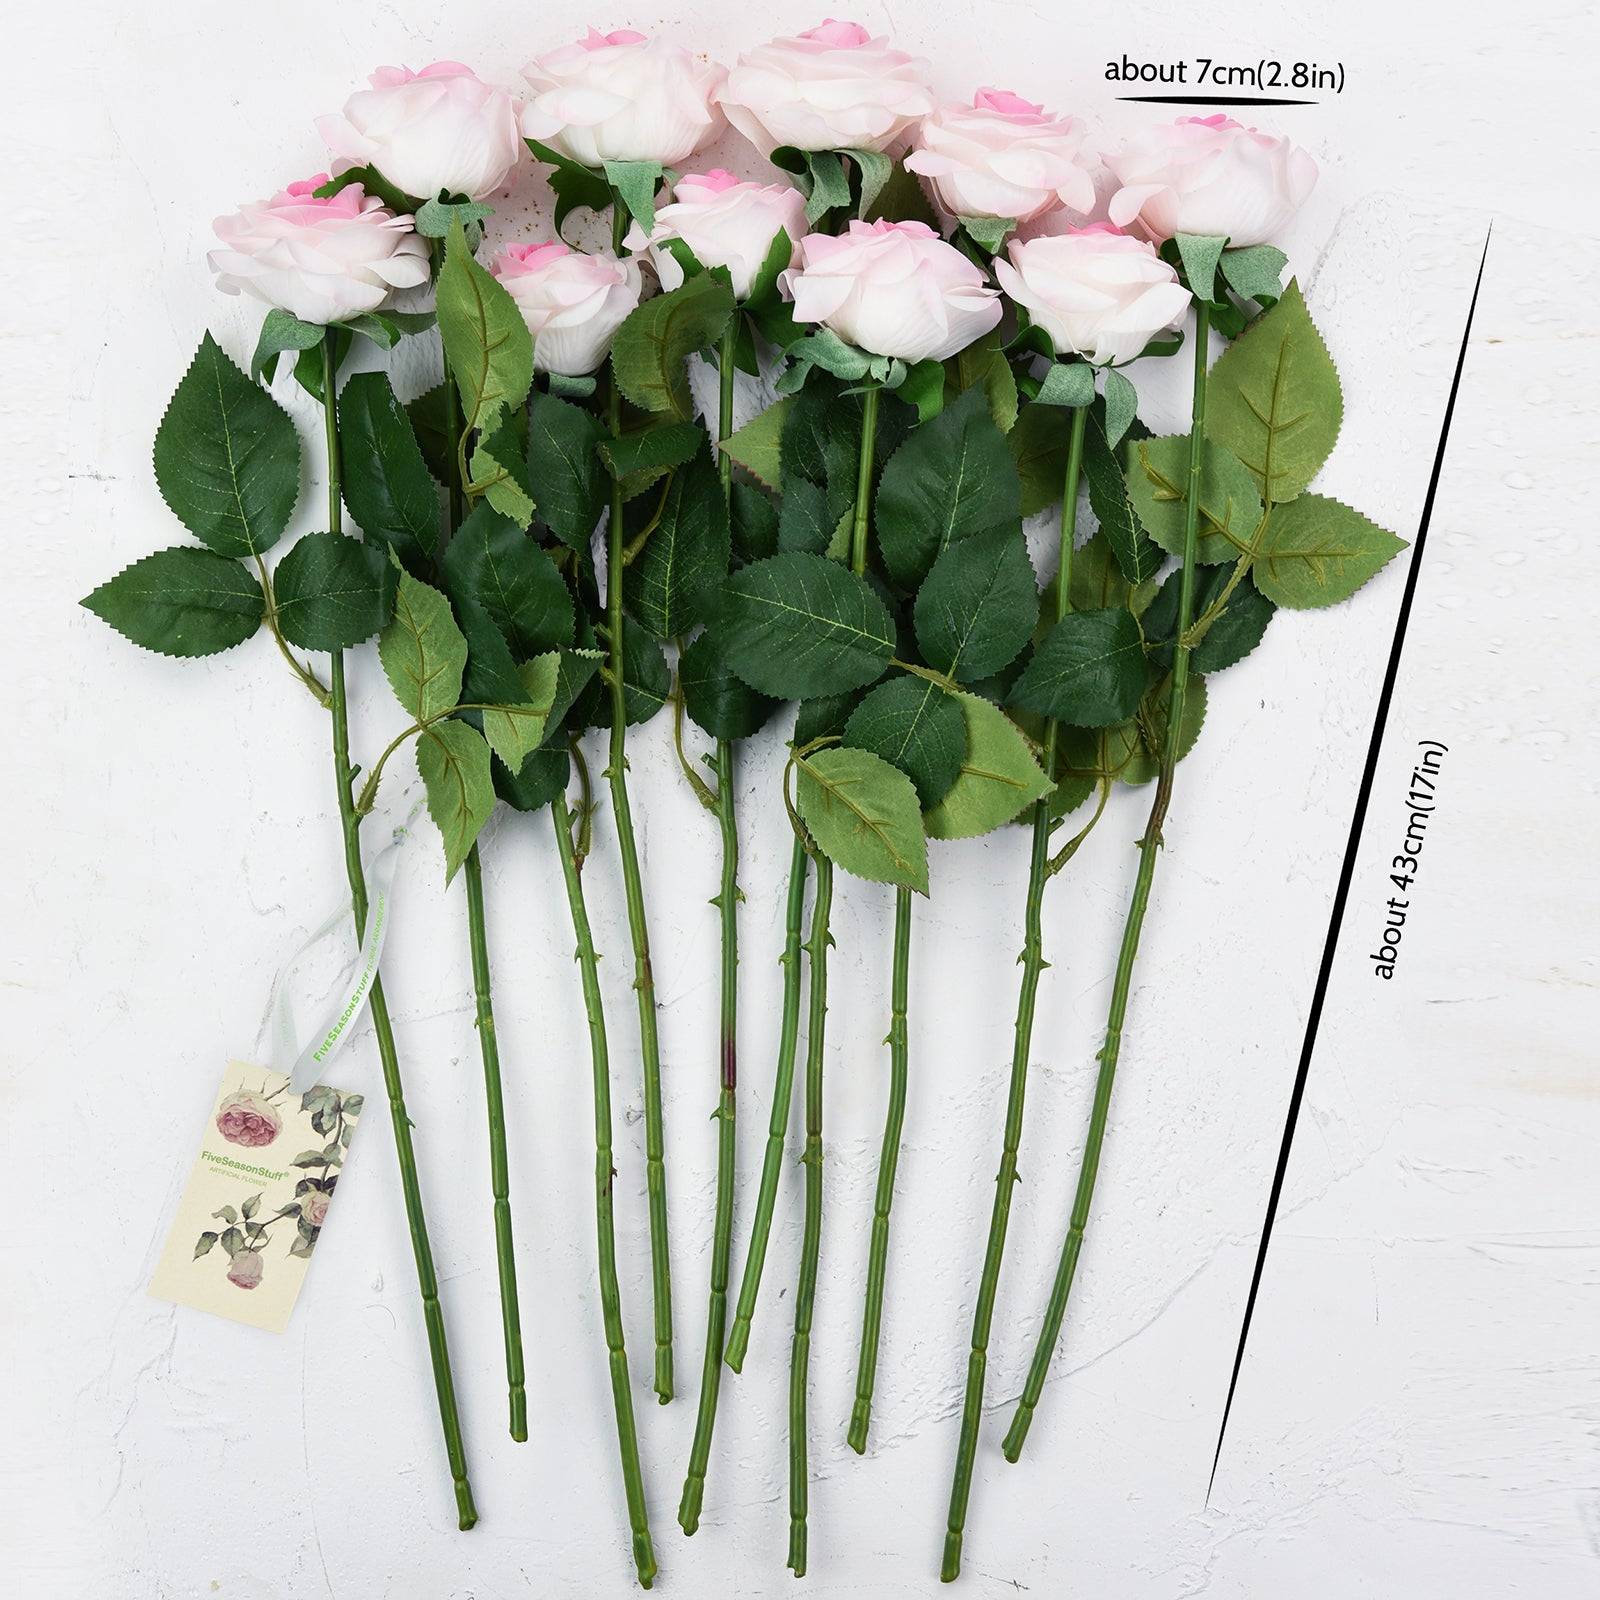 Artificial Flowers Real Touch Silk Roses 10 Stems (White & Pink)